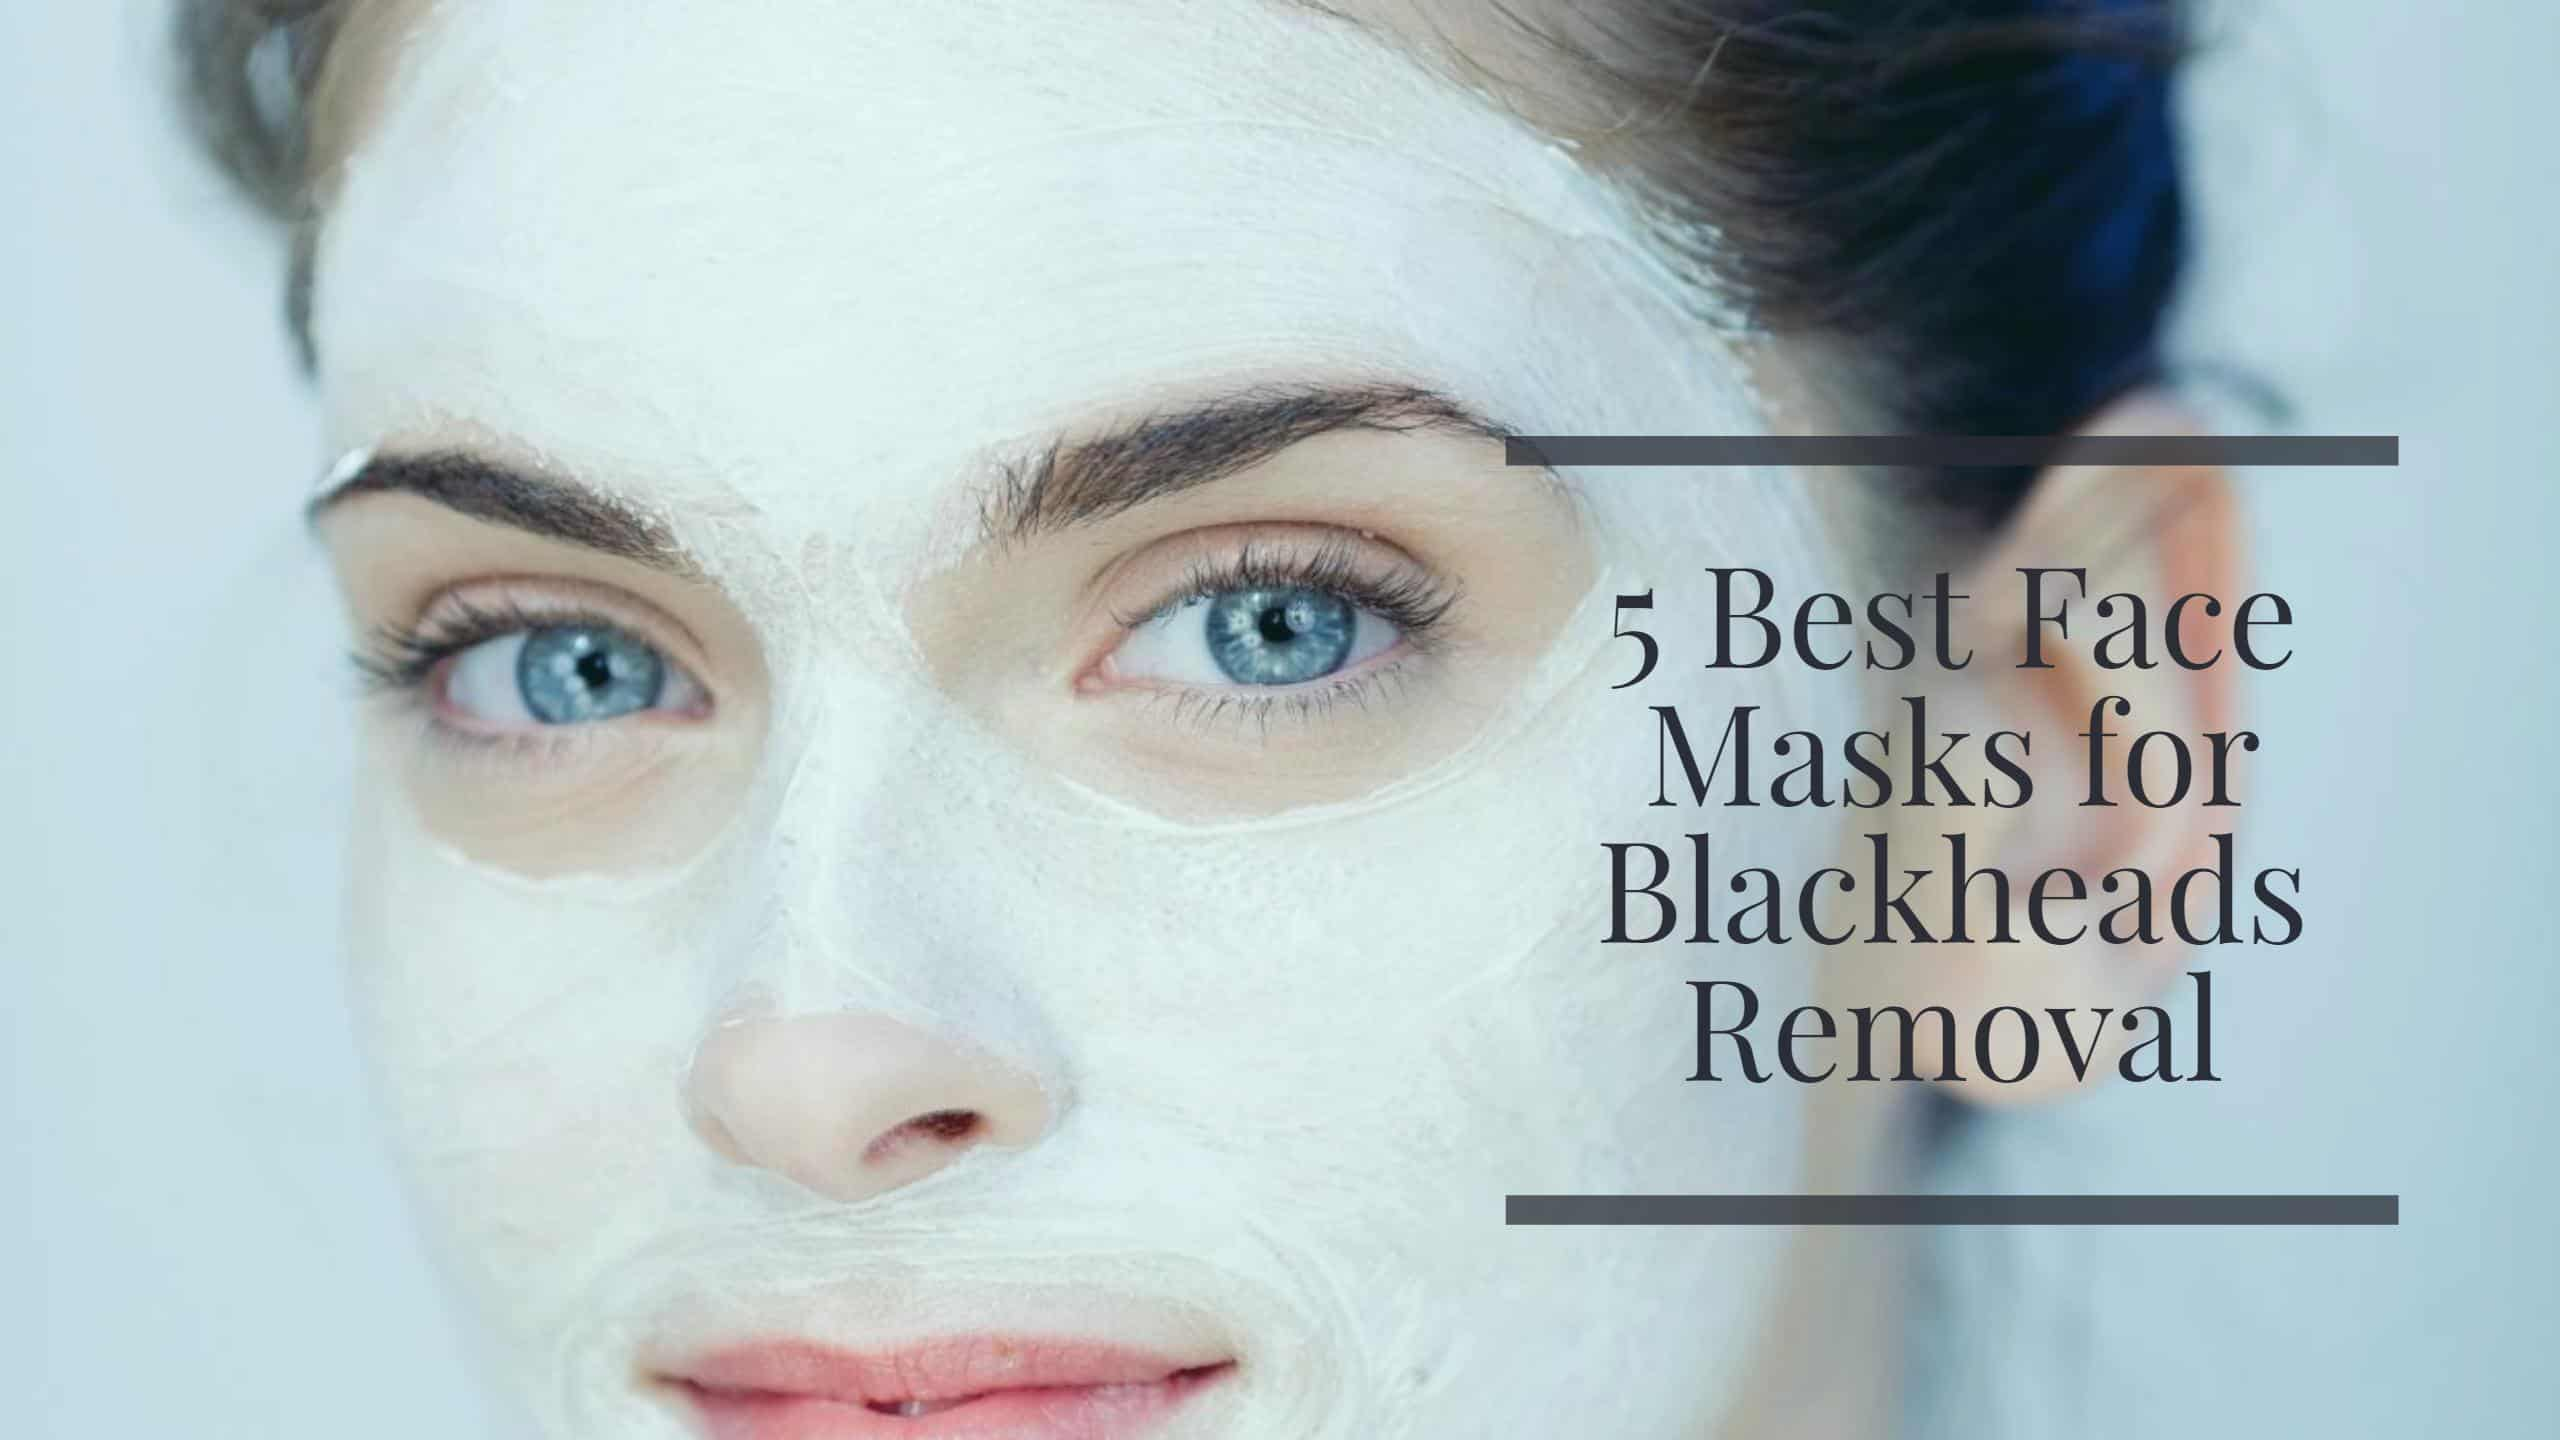 Homemade Face Scrub For Blackheads 5 Best Face Masks For Blackheads Removal